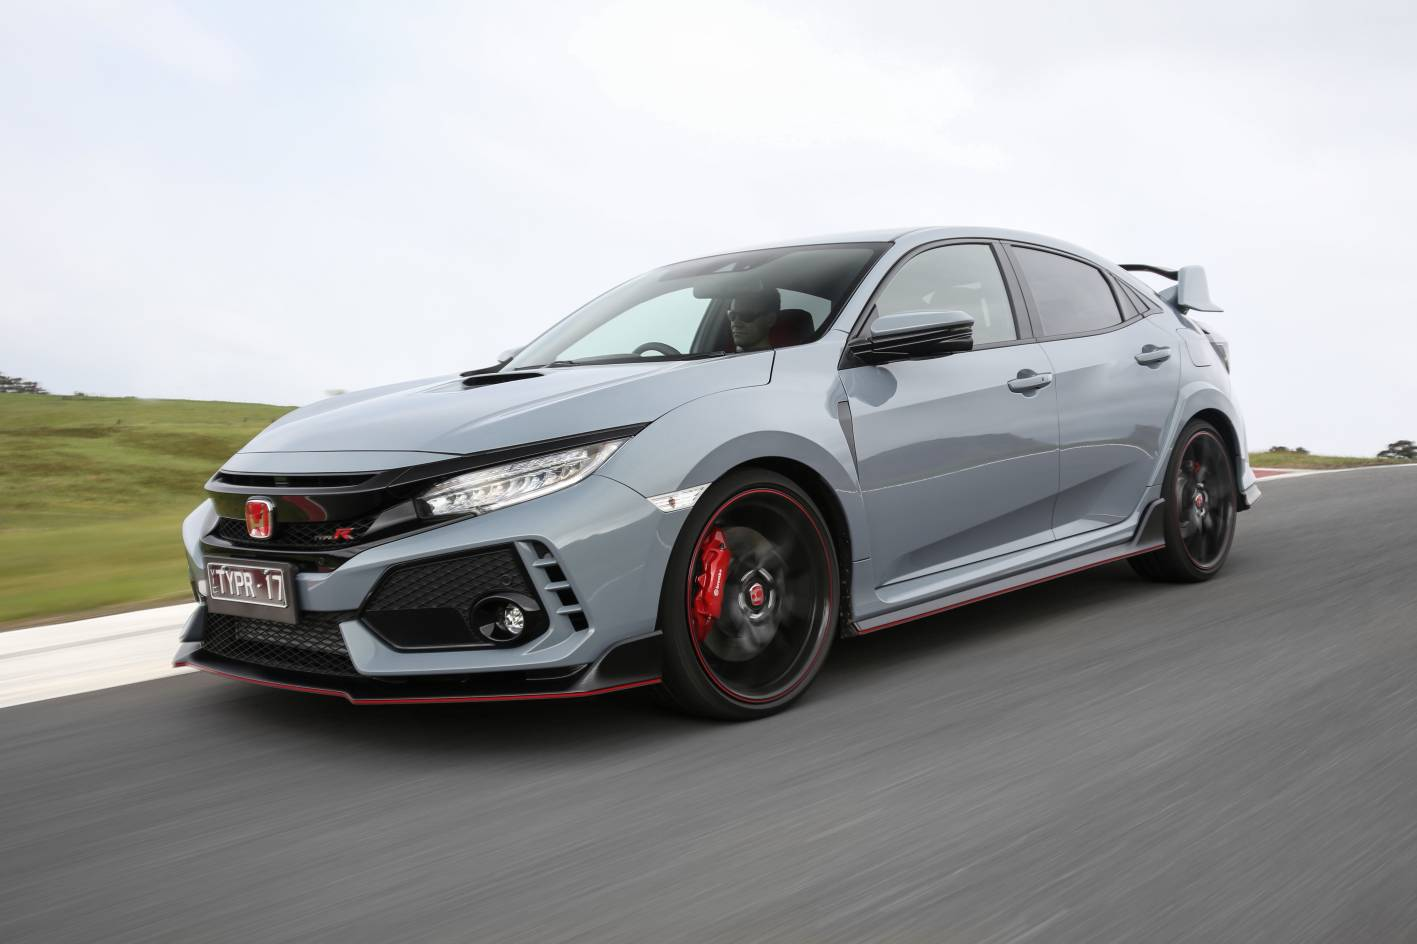 2018 honda civic type r technical overview for Buy honda civic type r